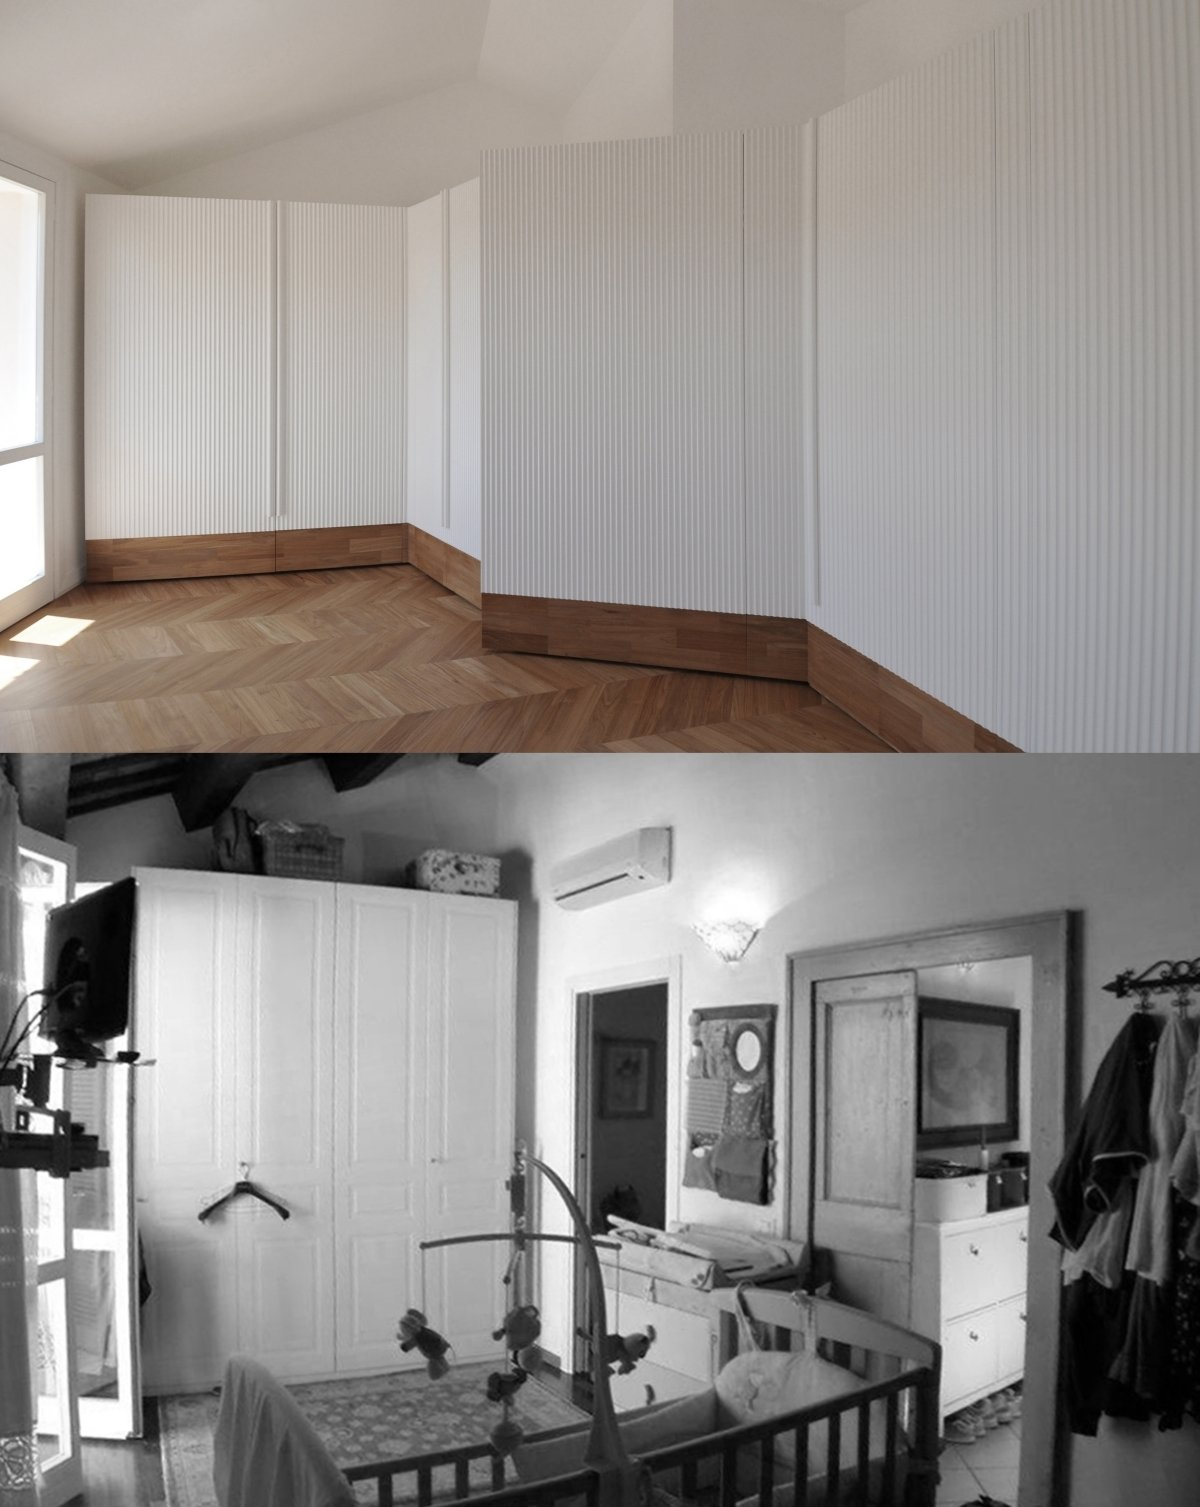 Bedroom before and after photos of the bedroom  cdr